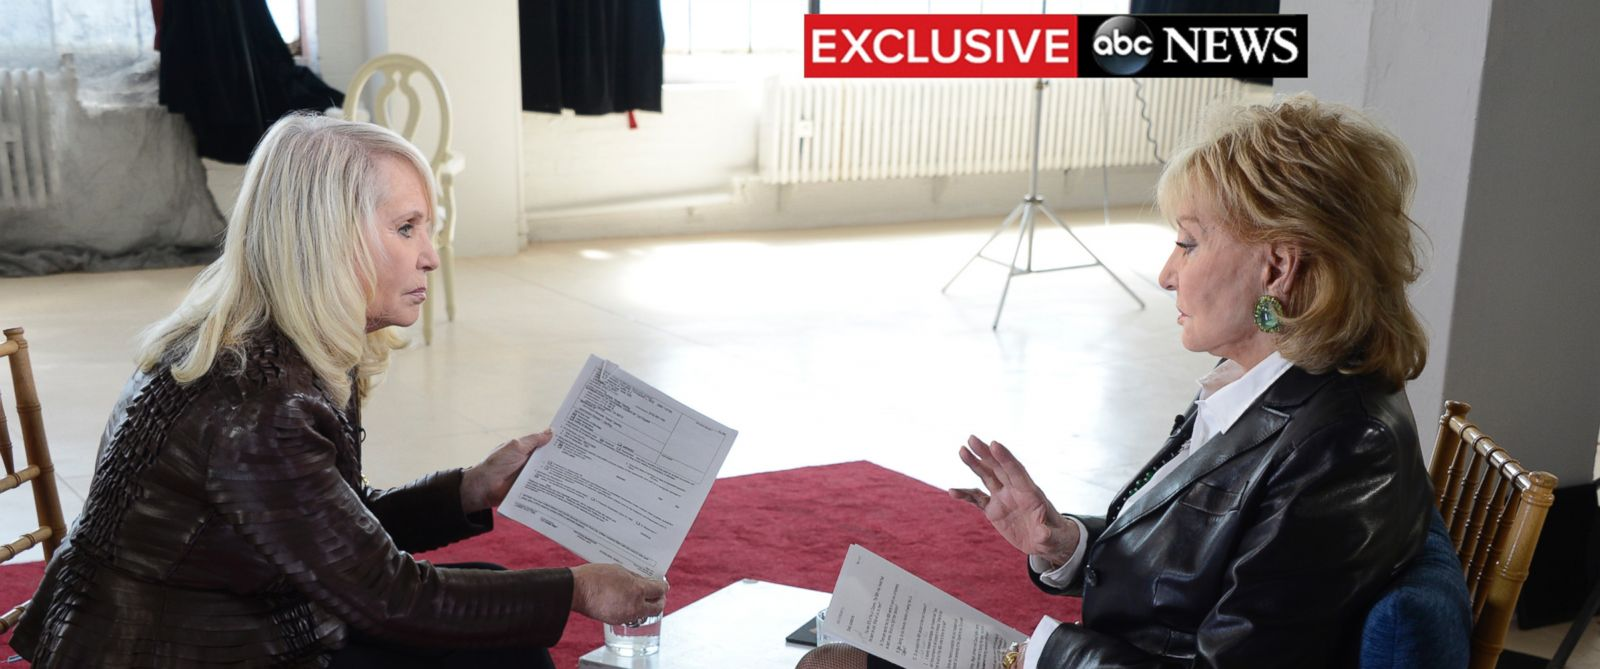 PHOTO: Barbara Walters sat down with Shelley Sterling in an ABC News exclusive interview, Sunday, May 11, 2014.